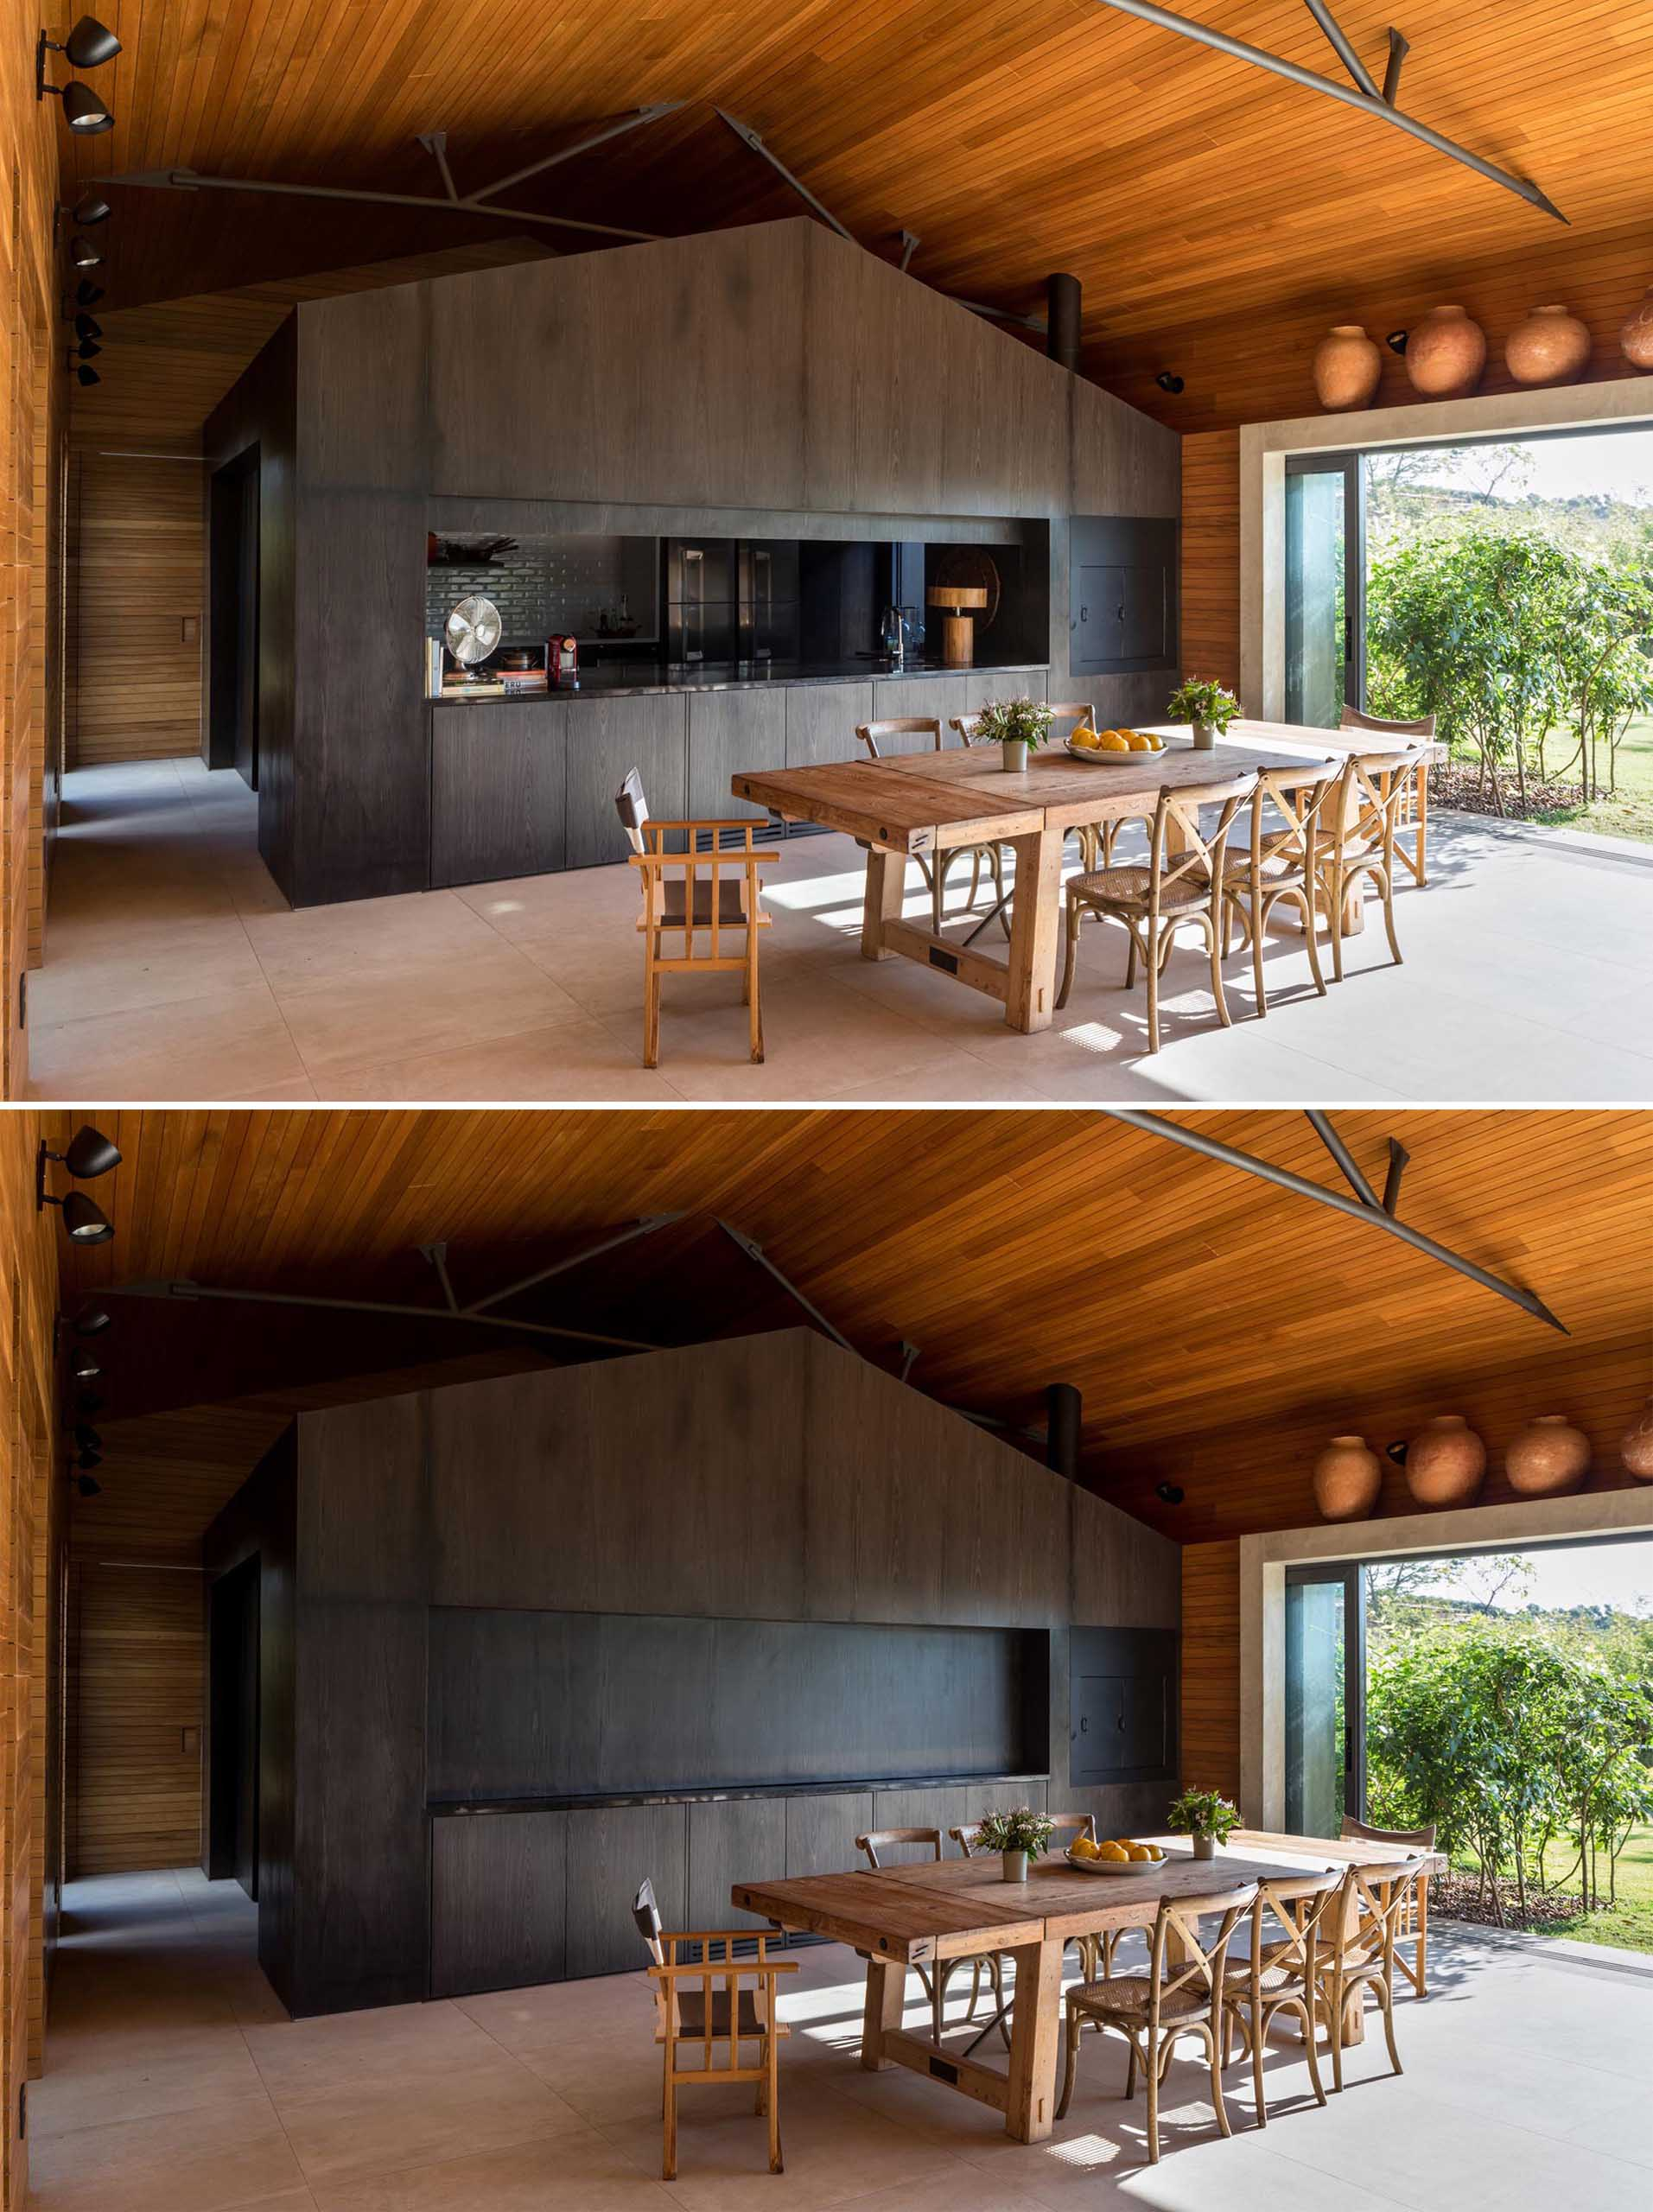 The interior of this modern home is lined in Tauari, a Brazilian pale wood, while the kitchen is completely made out of darkened wood. The kitchen can also be hidden from view, as a section of the cabinetry can be lowered down to close it off.